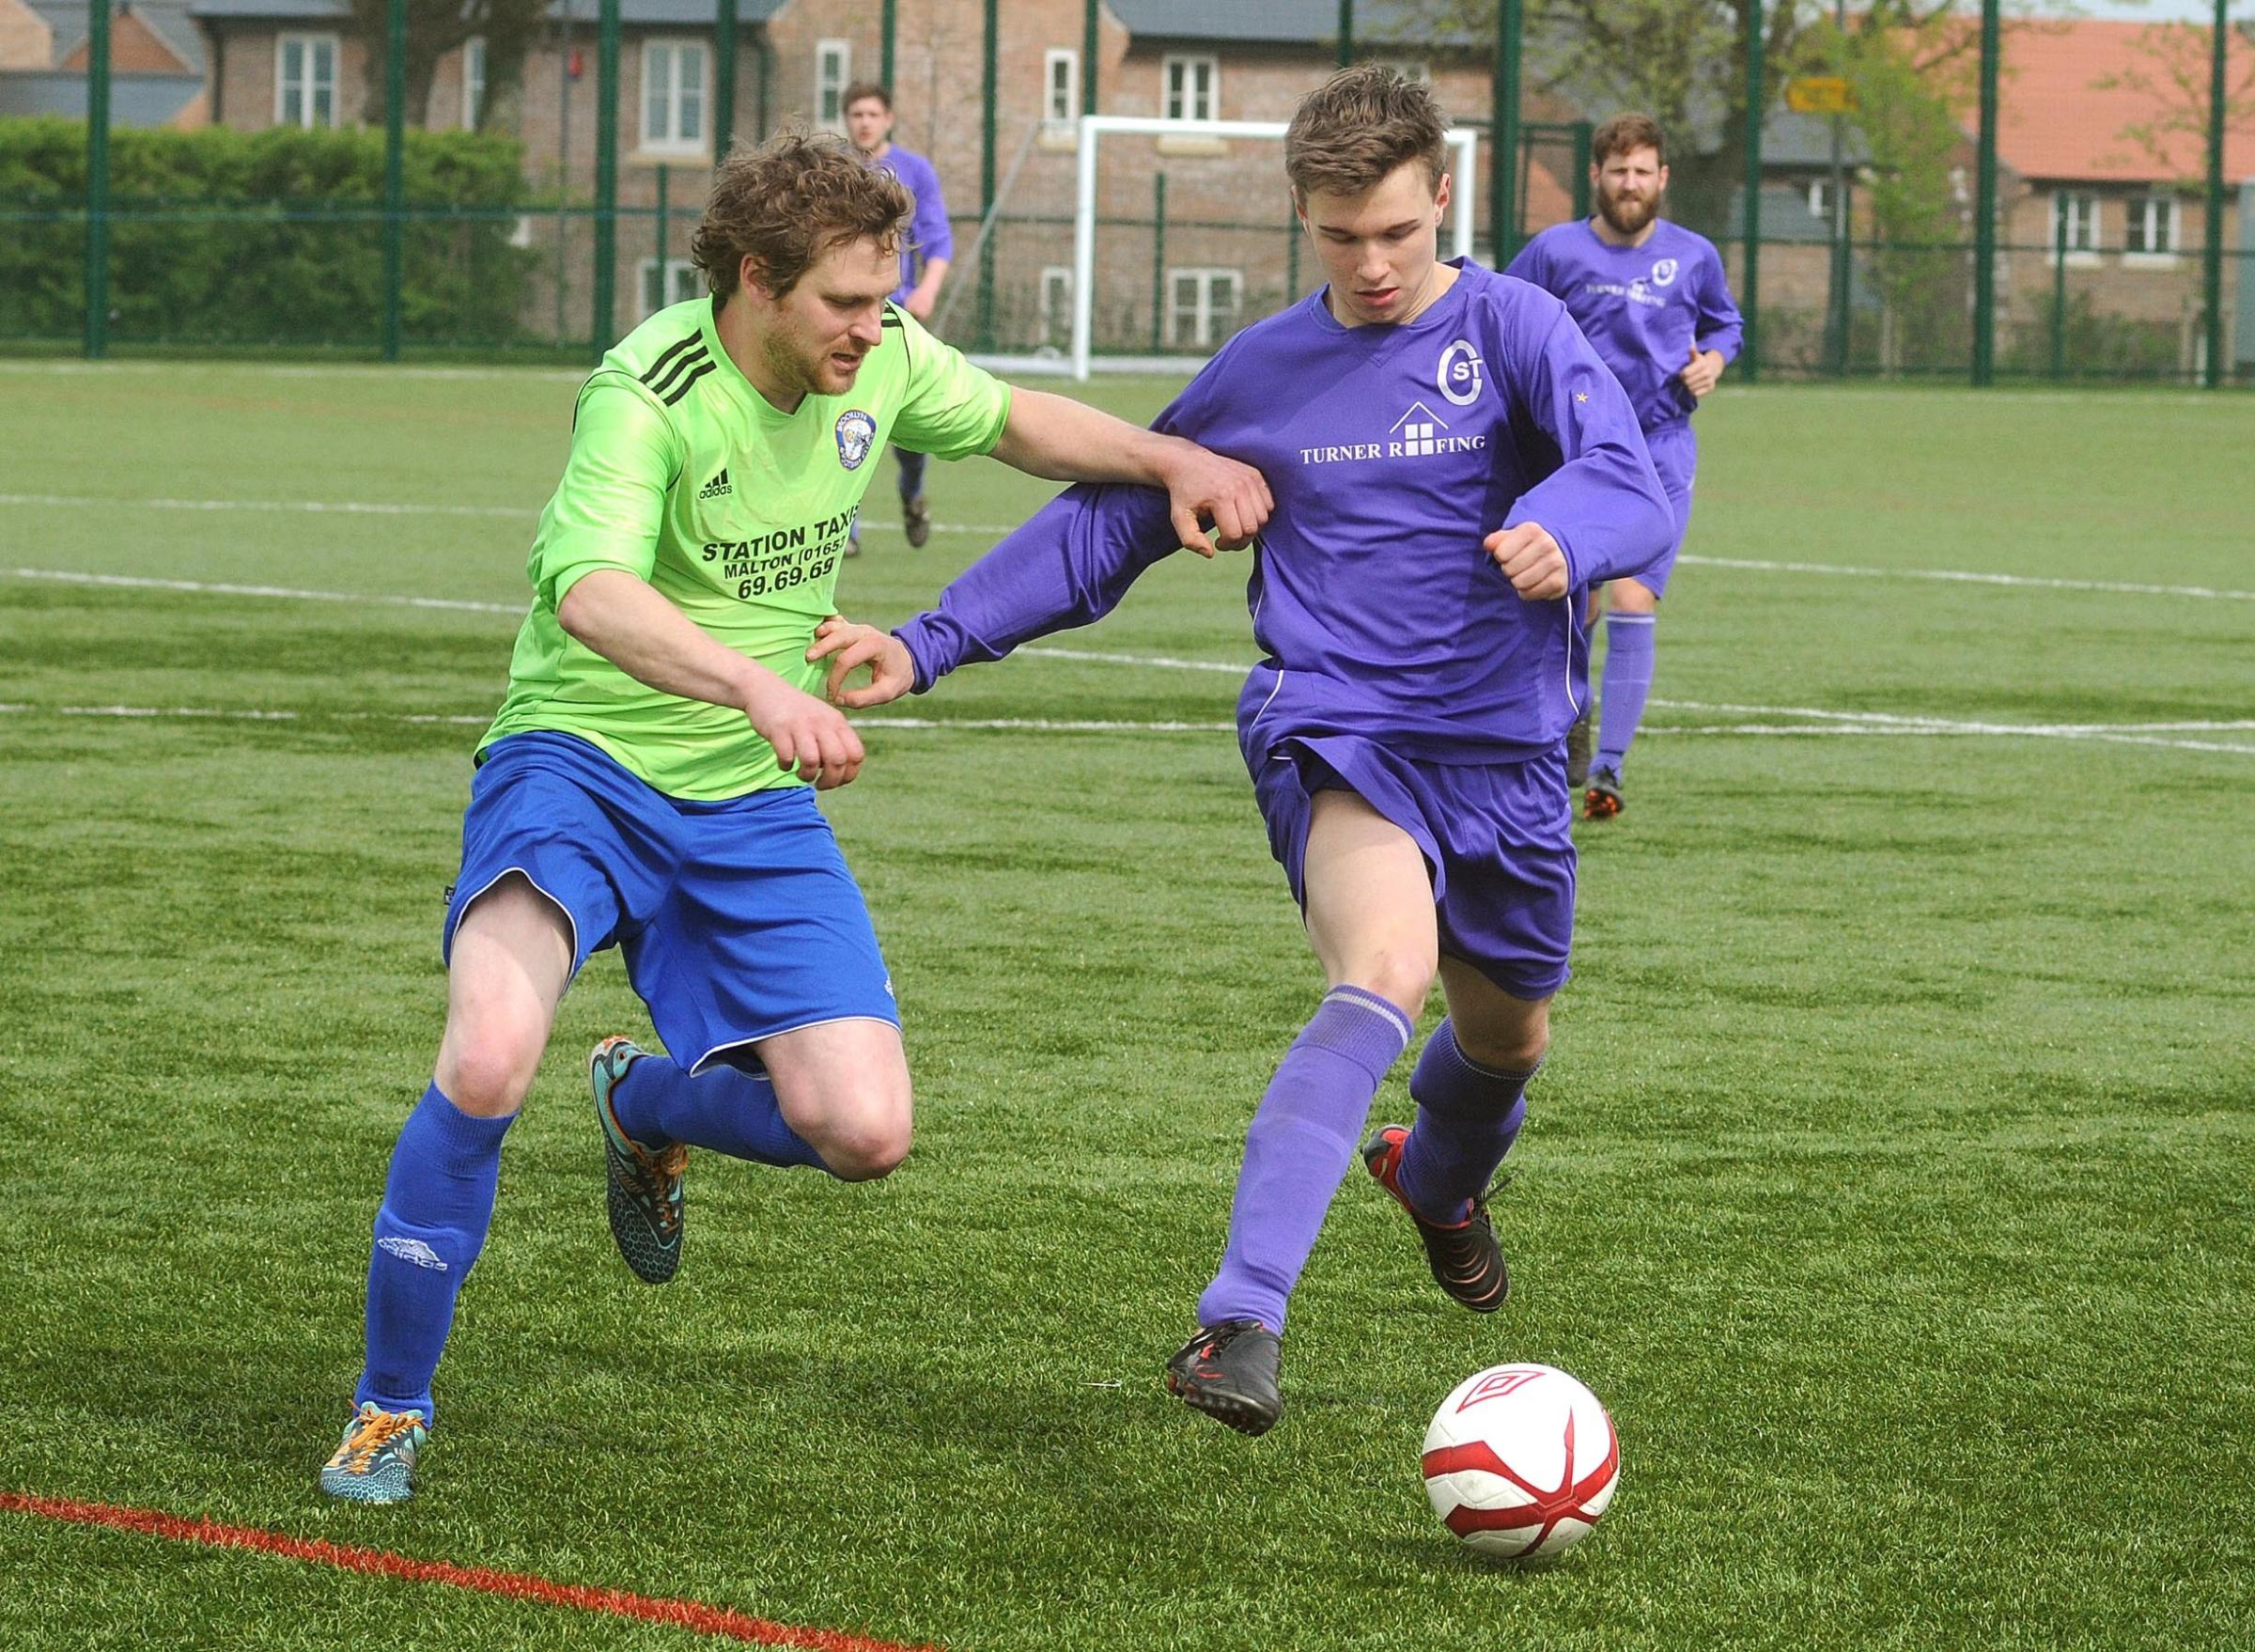 Brooklyn's Richard Webster, left, and St Clement's Dan Hickey, right, battle for possession in their York Minster Engineering Football League Senior Cup clash, which Brooklyn won 2-0 to advance to the semi-finals